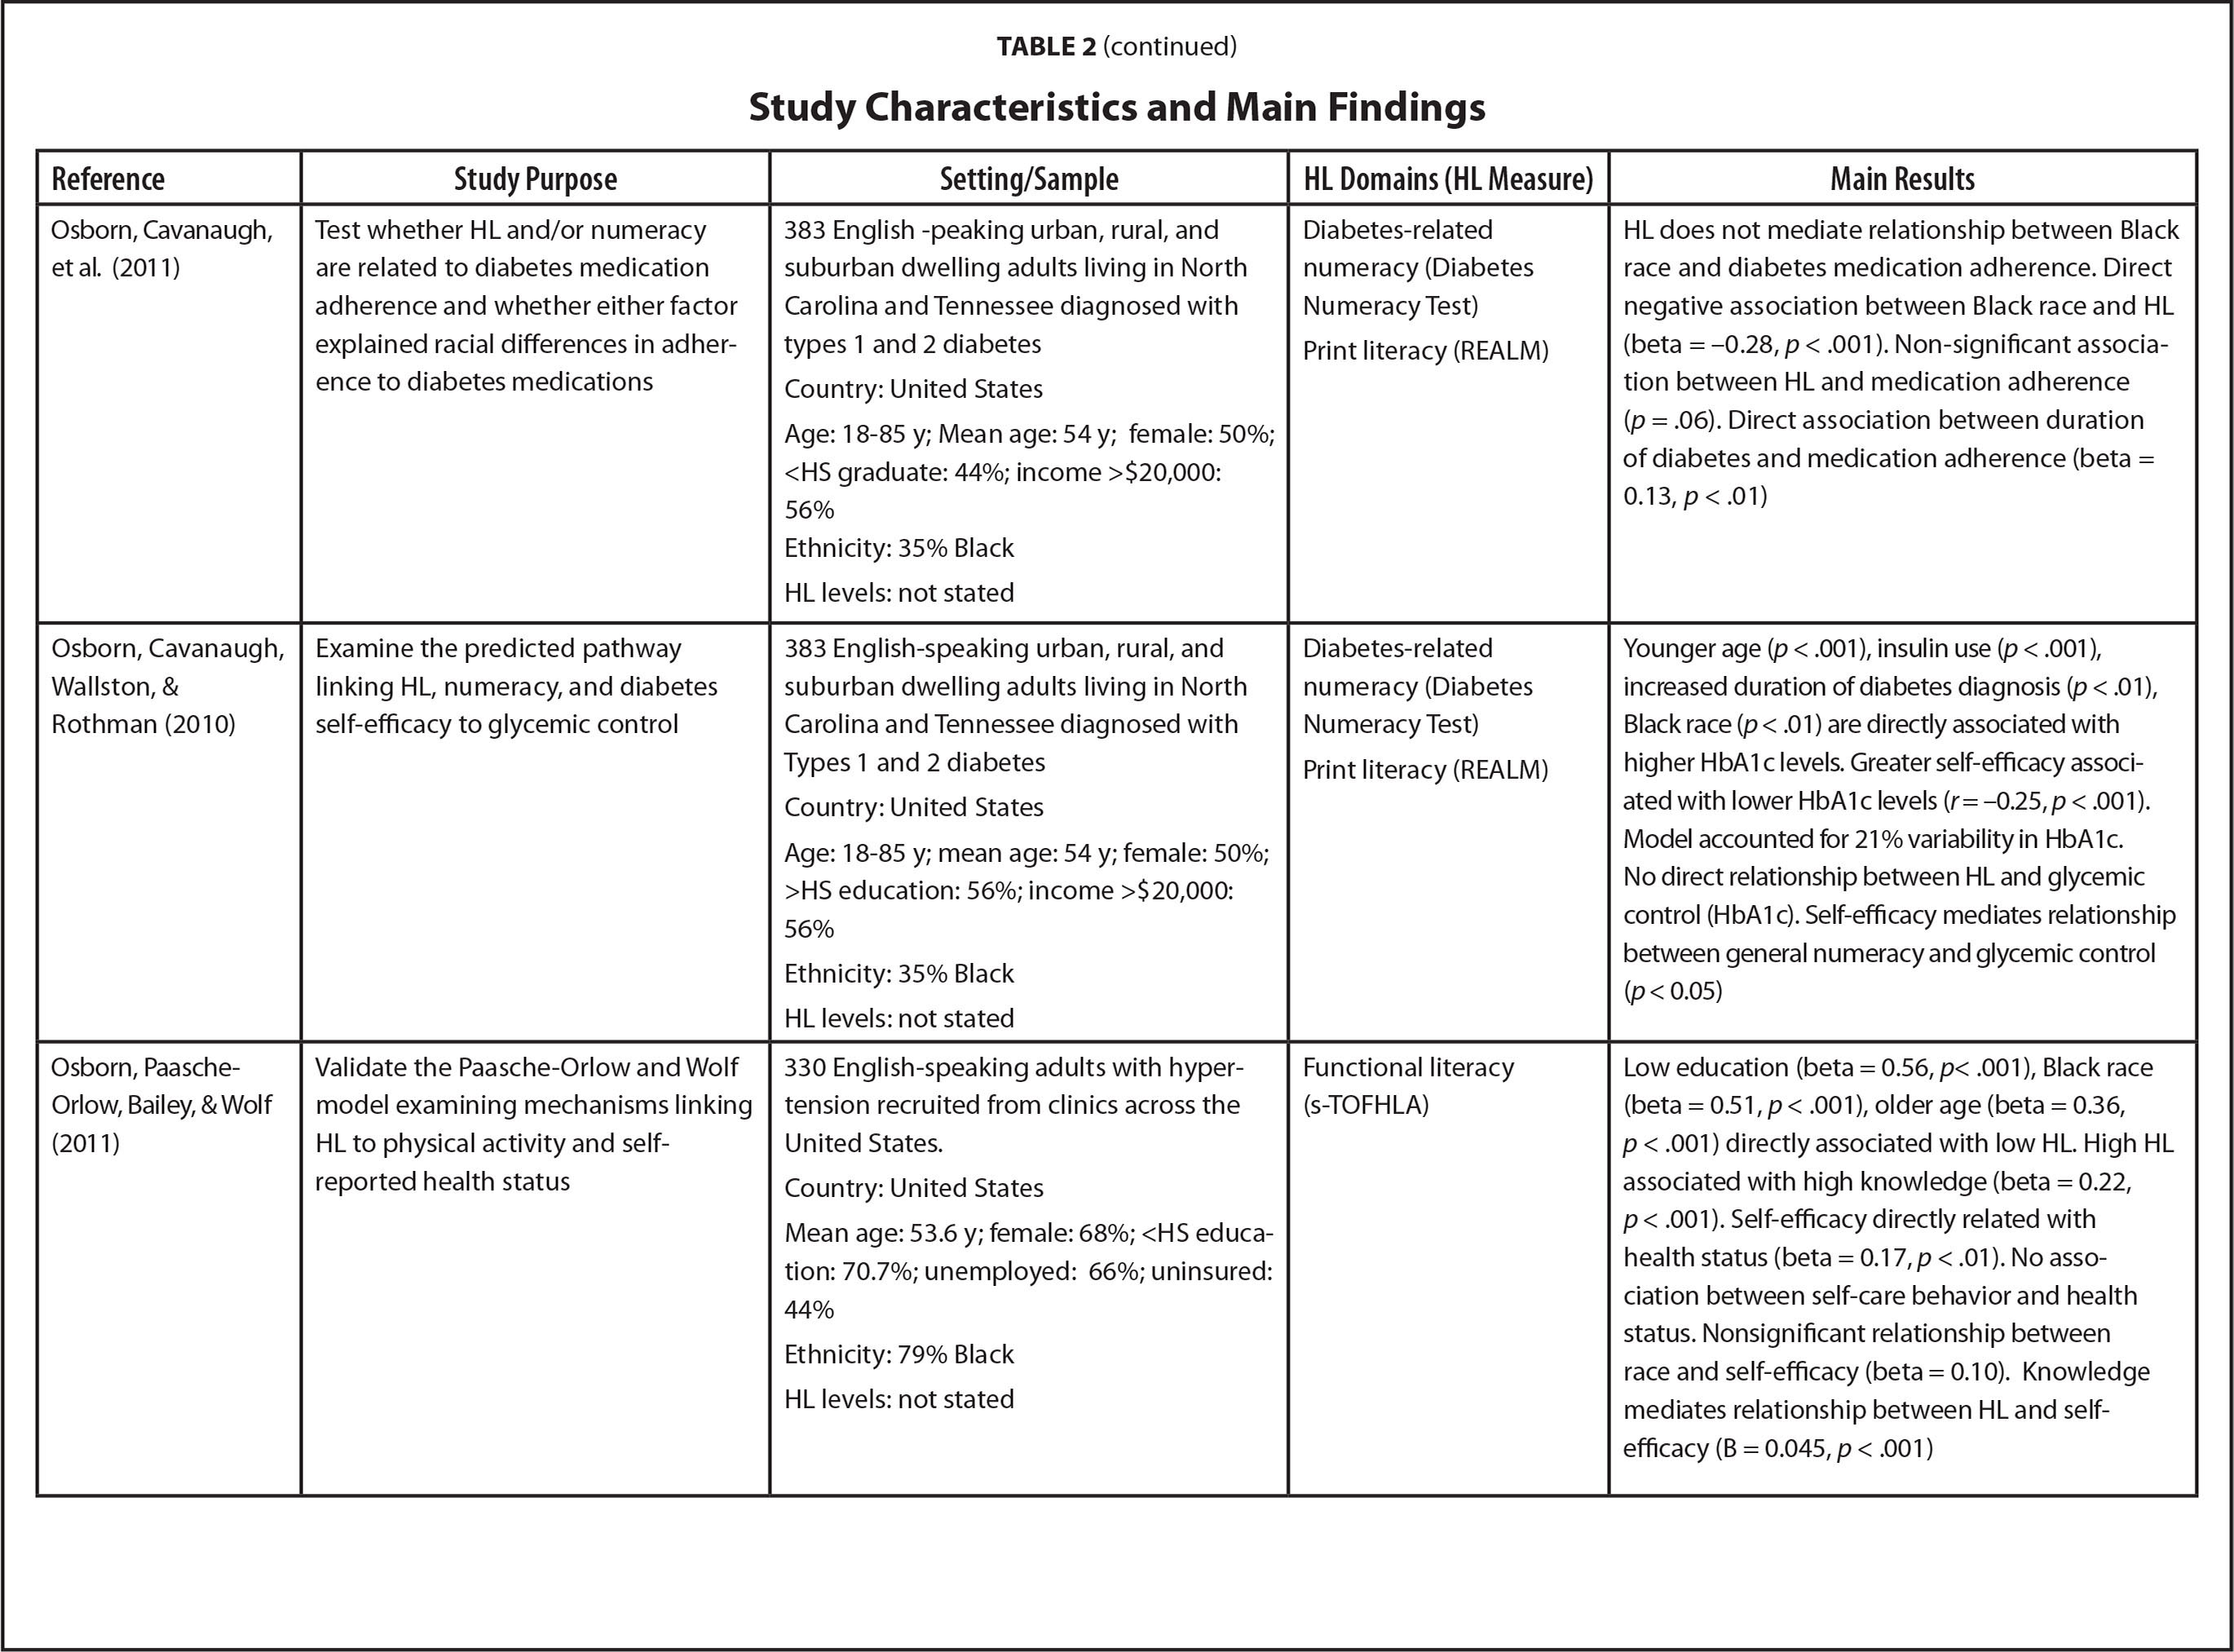 Study Characteristics and Main Findings